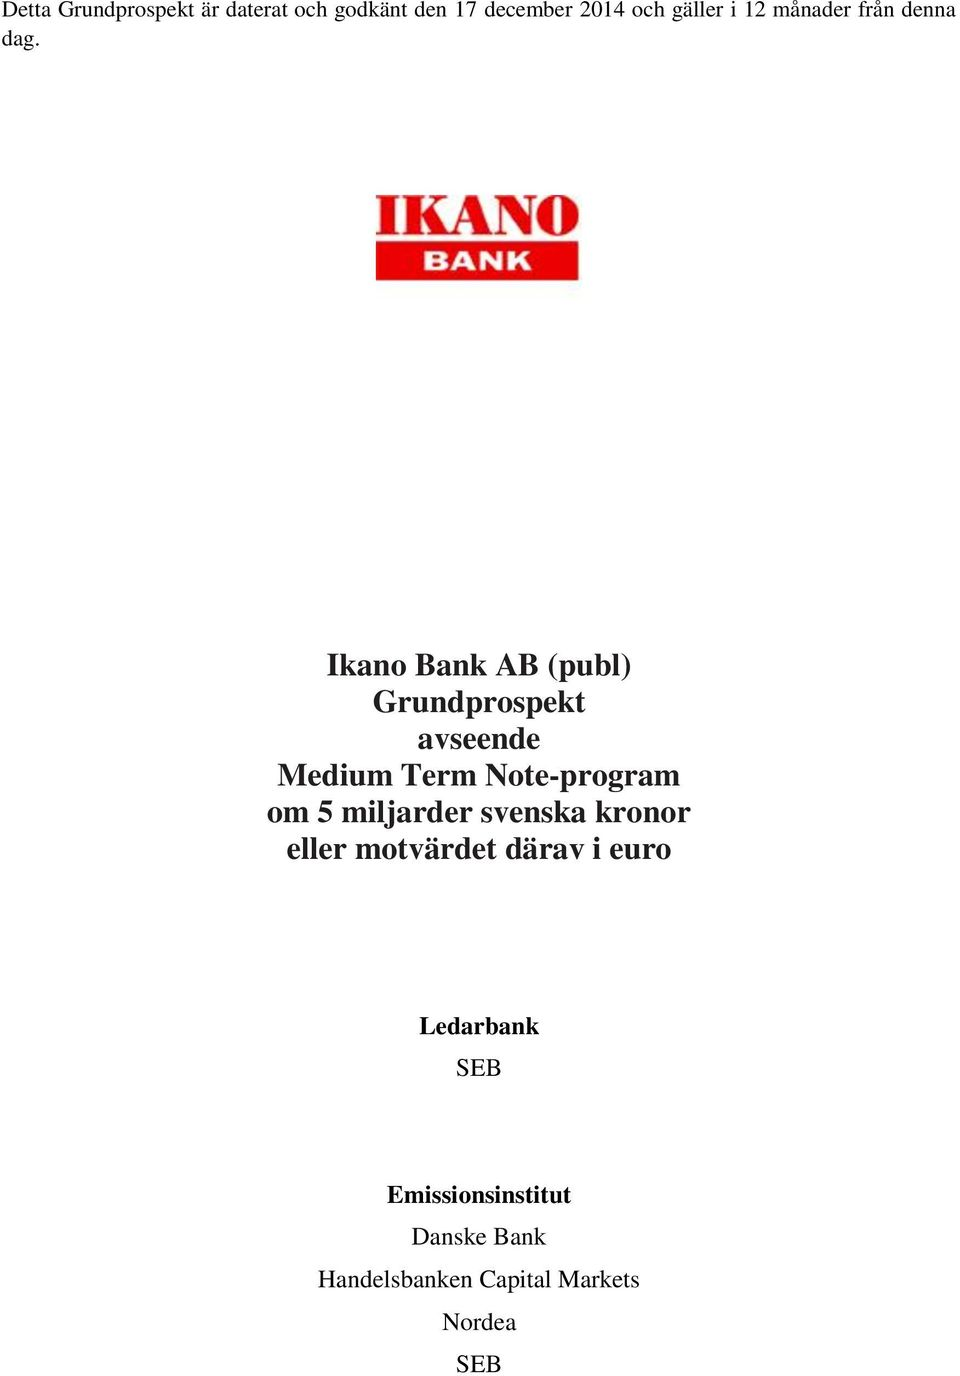 Ikano Bank AB (publ) Grundprospekt avseende Medium Term Note-program om 5